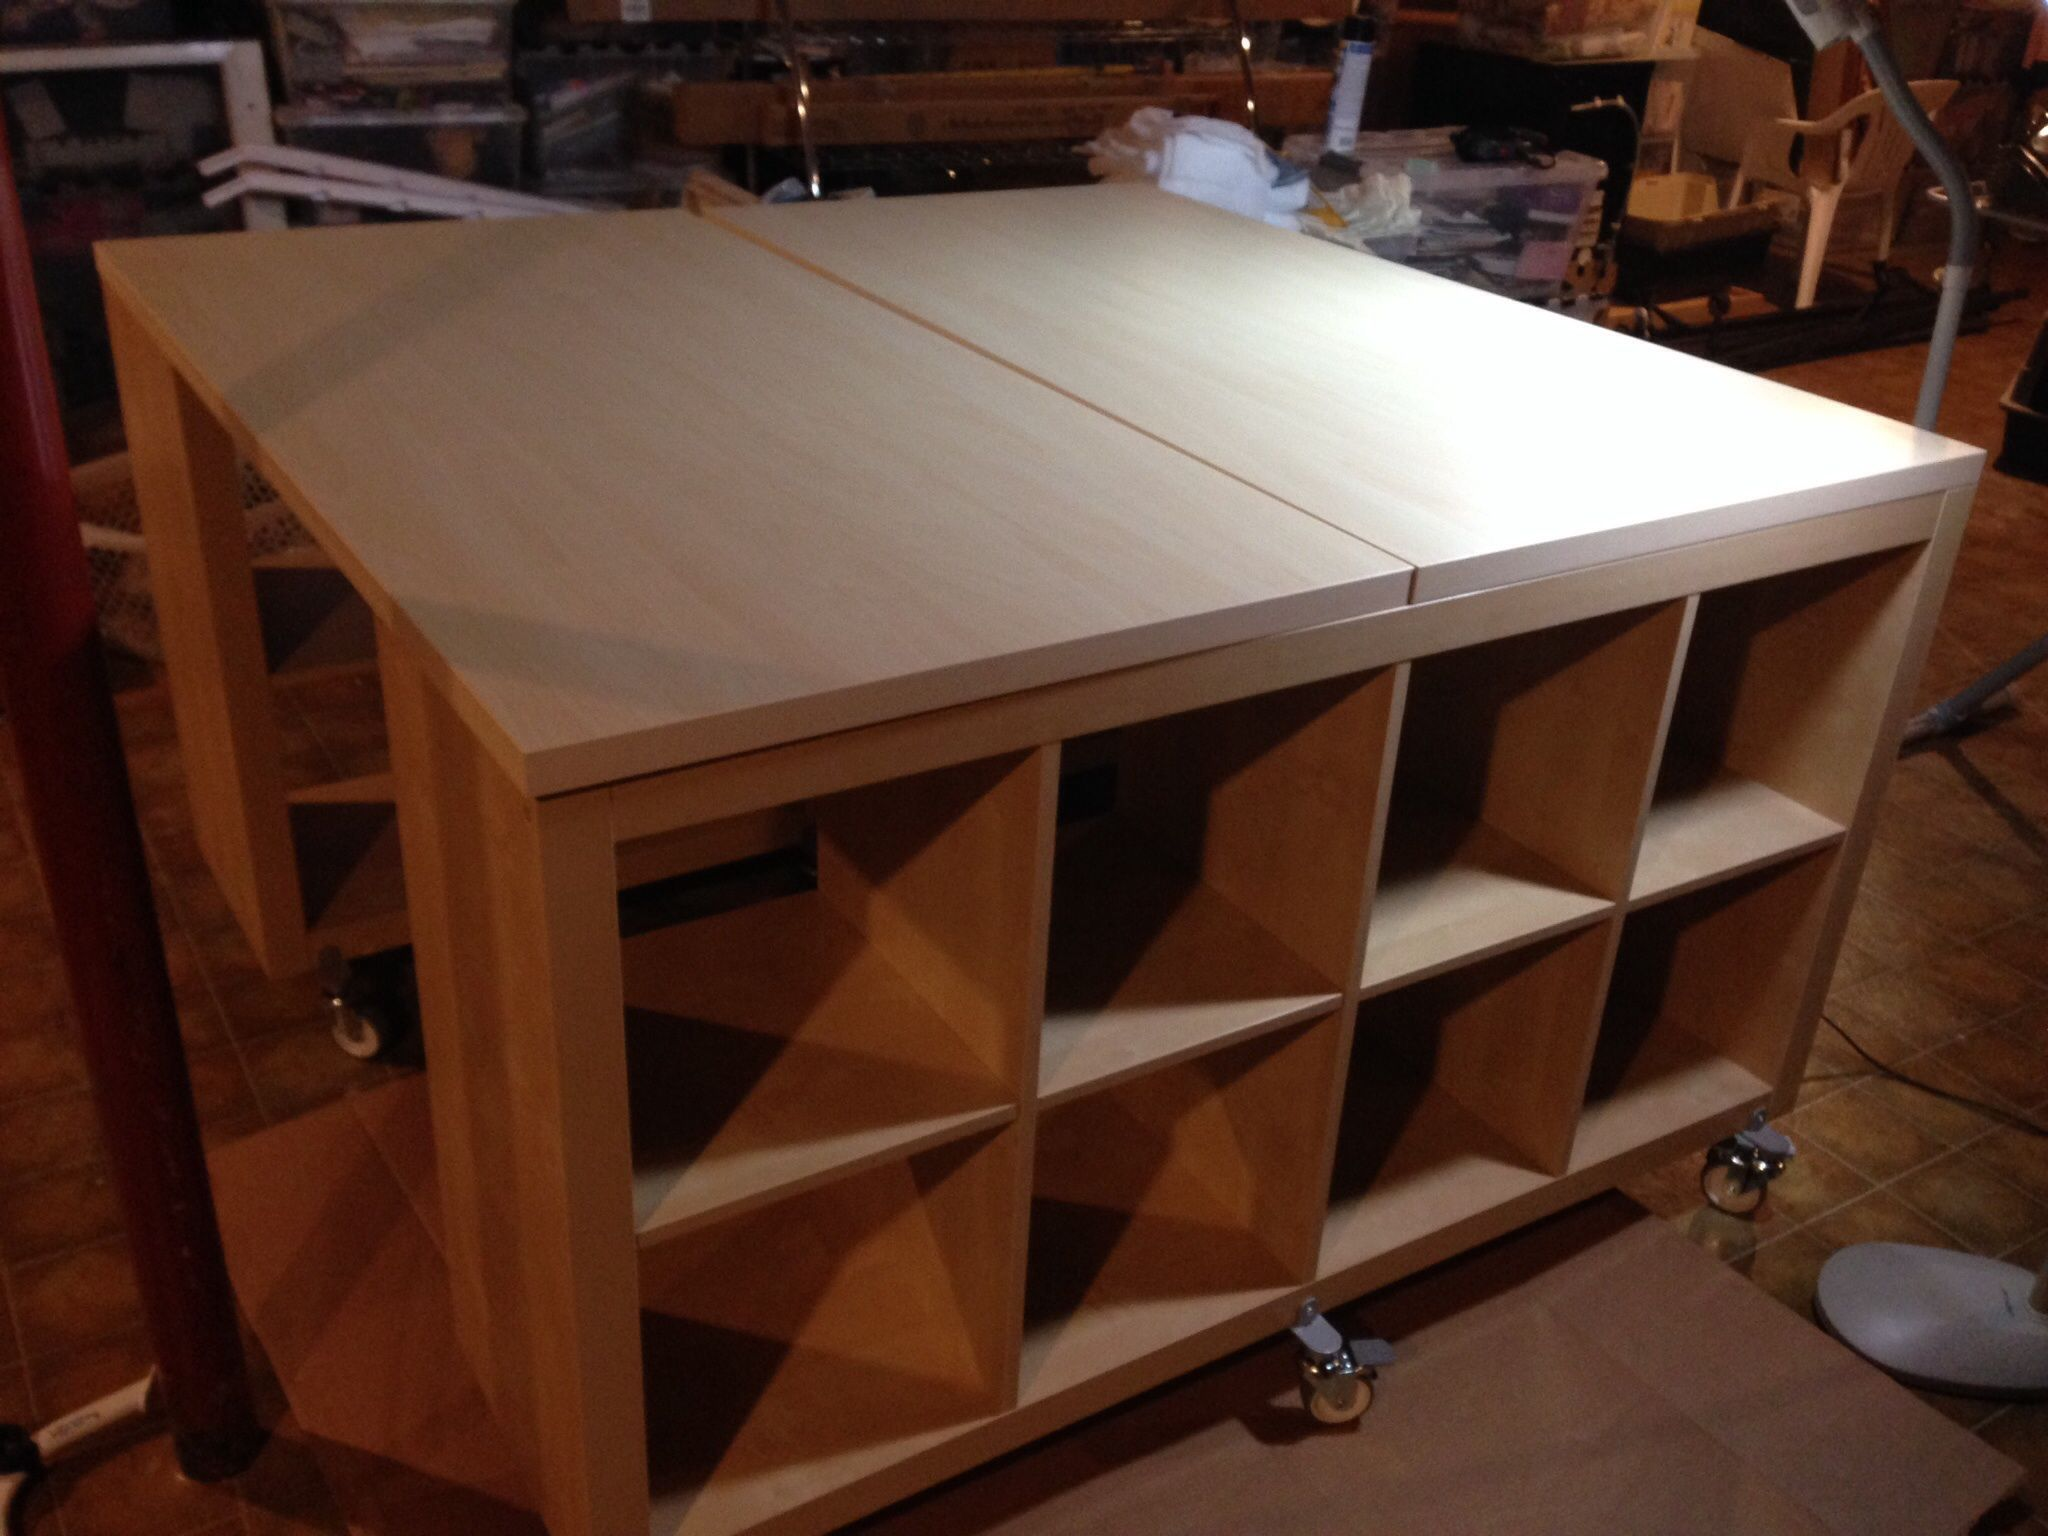 After Researching Ideas I Decided To Make My Own Counter Height Craft Sewing Table I Used Two Ikea Expedit Craft Table Ikea Sewing Rooms Ikea Expedit Shelf